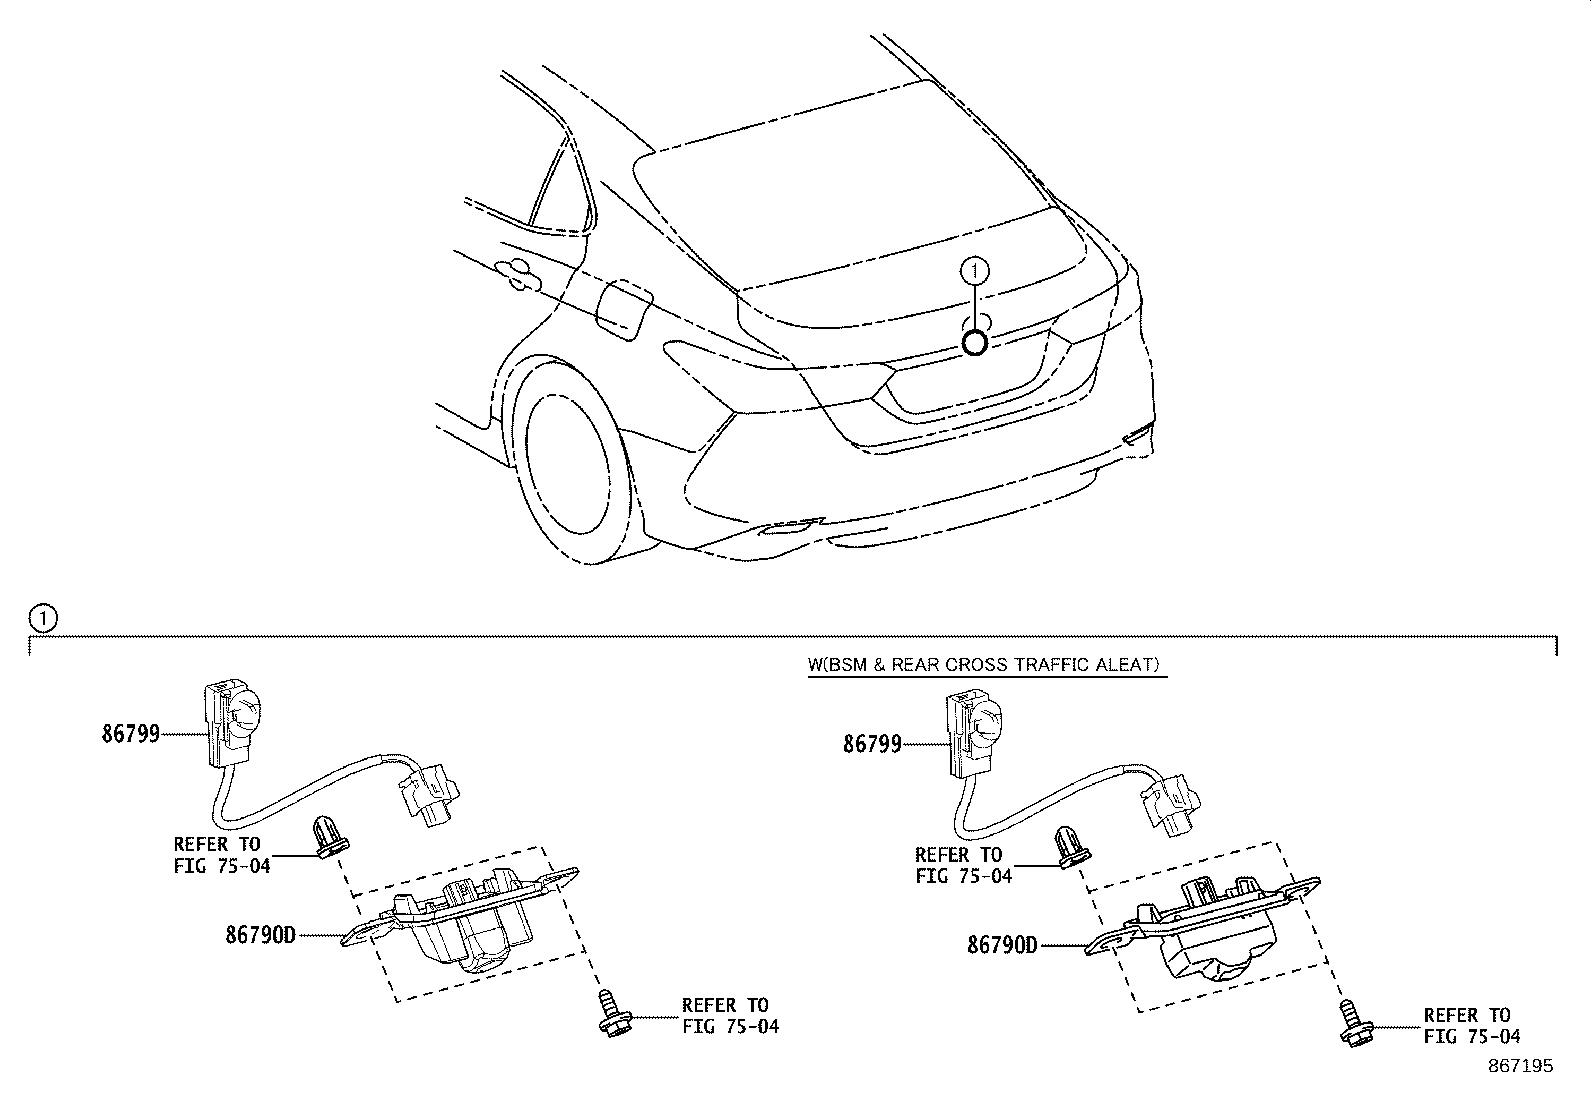 Toyota Camry Park Assist Camera Rear Electrical Make